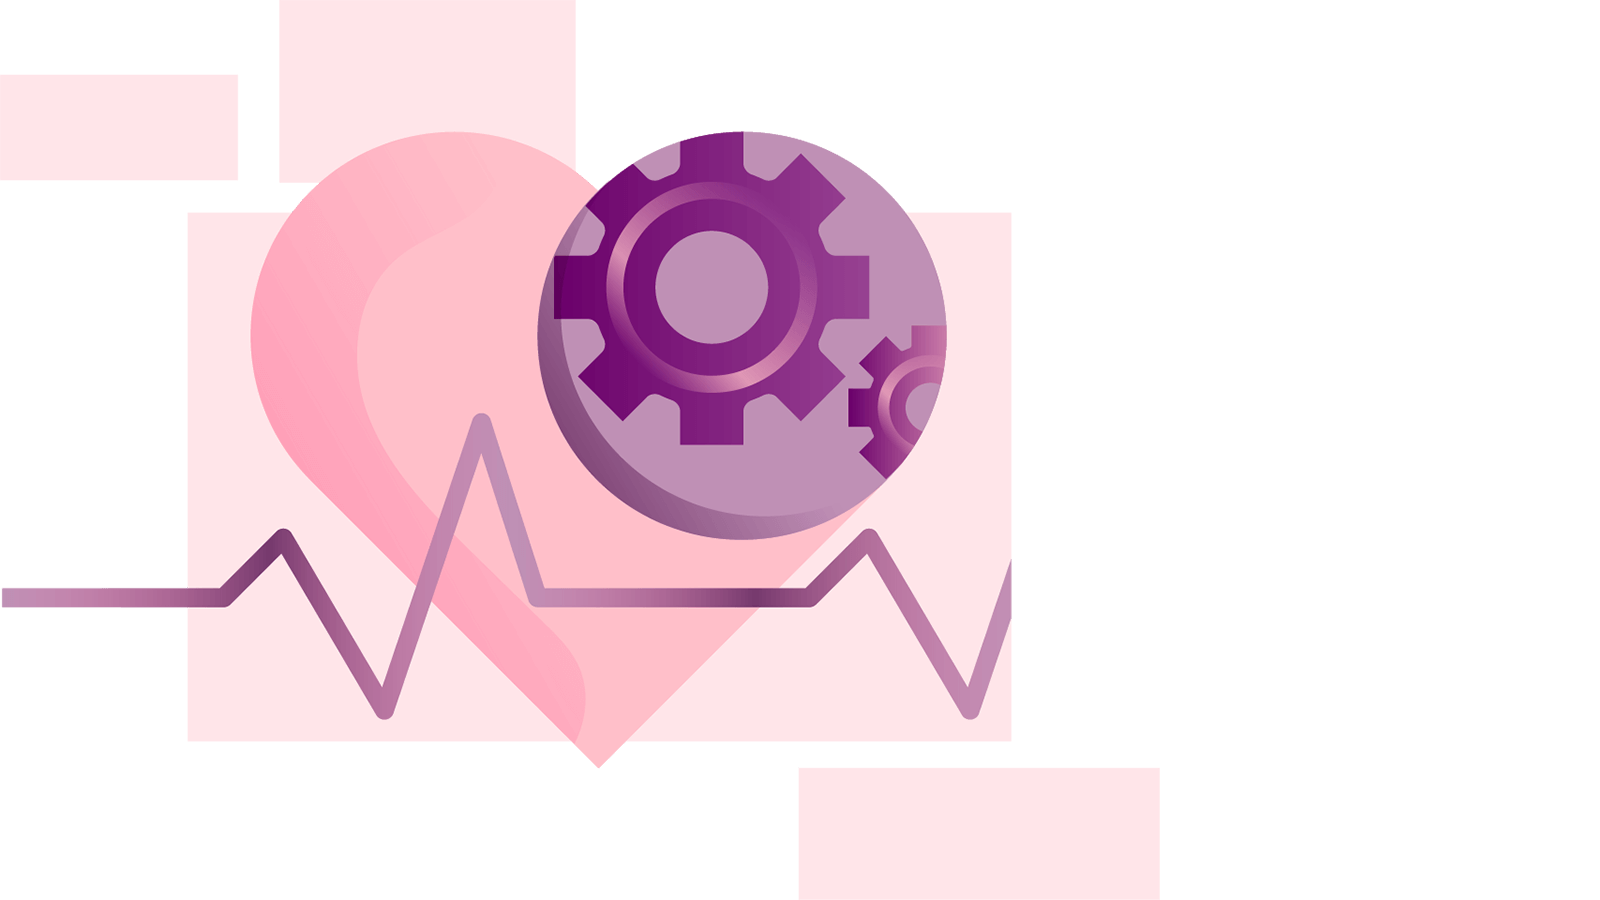 Illustration of a heart with a cog and heart rate pulse line